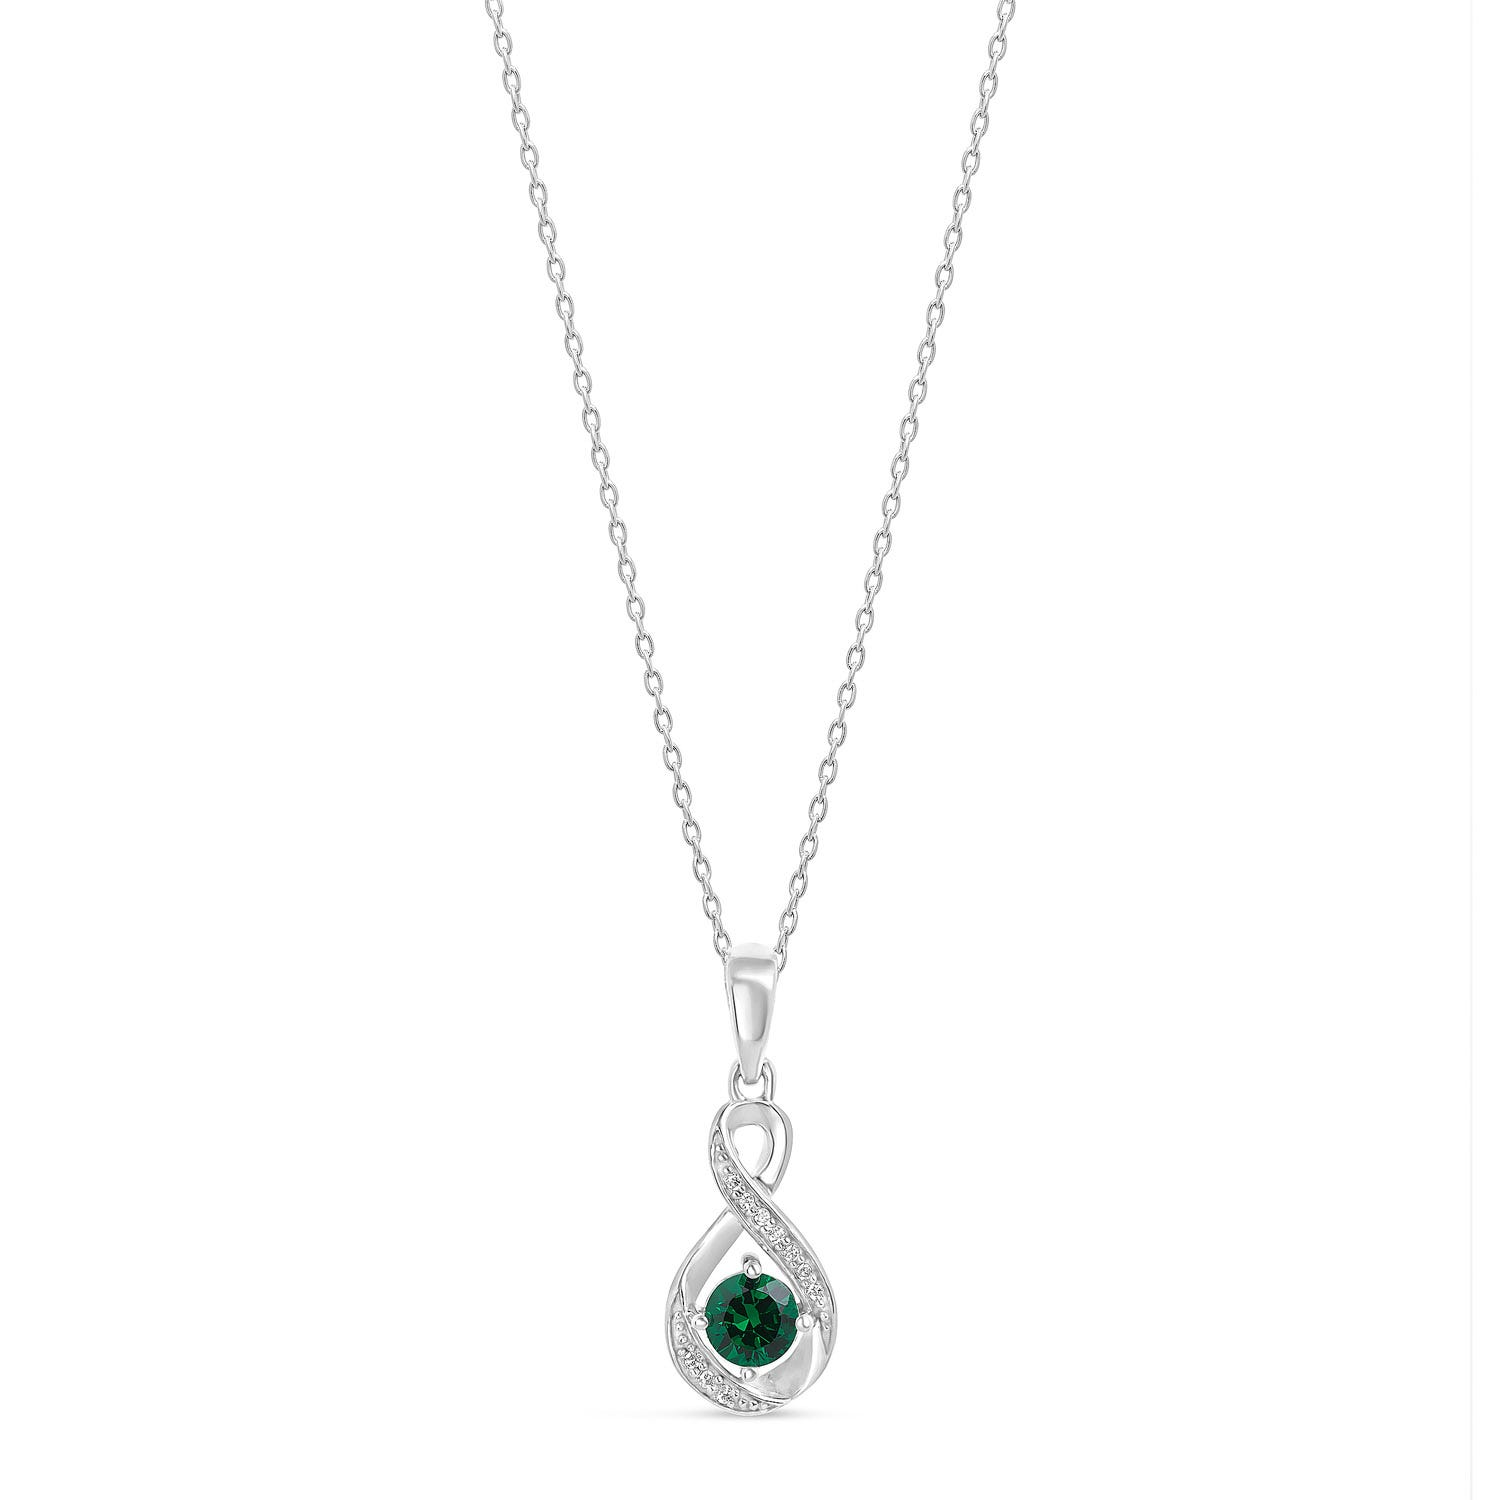 Sterling Silver and Cubic Zirconia May Birthstone Pendant